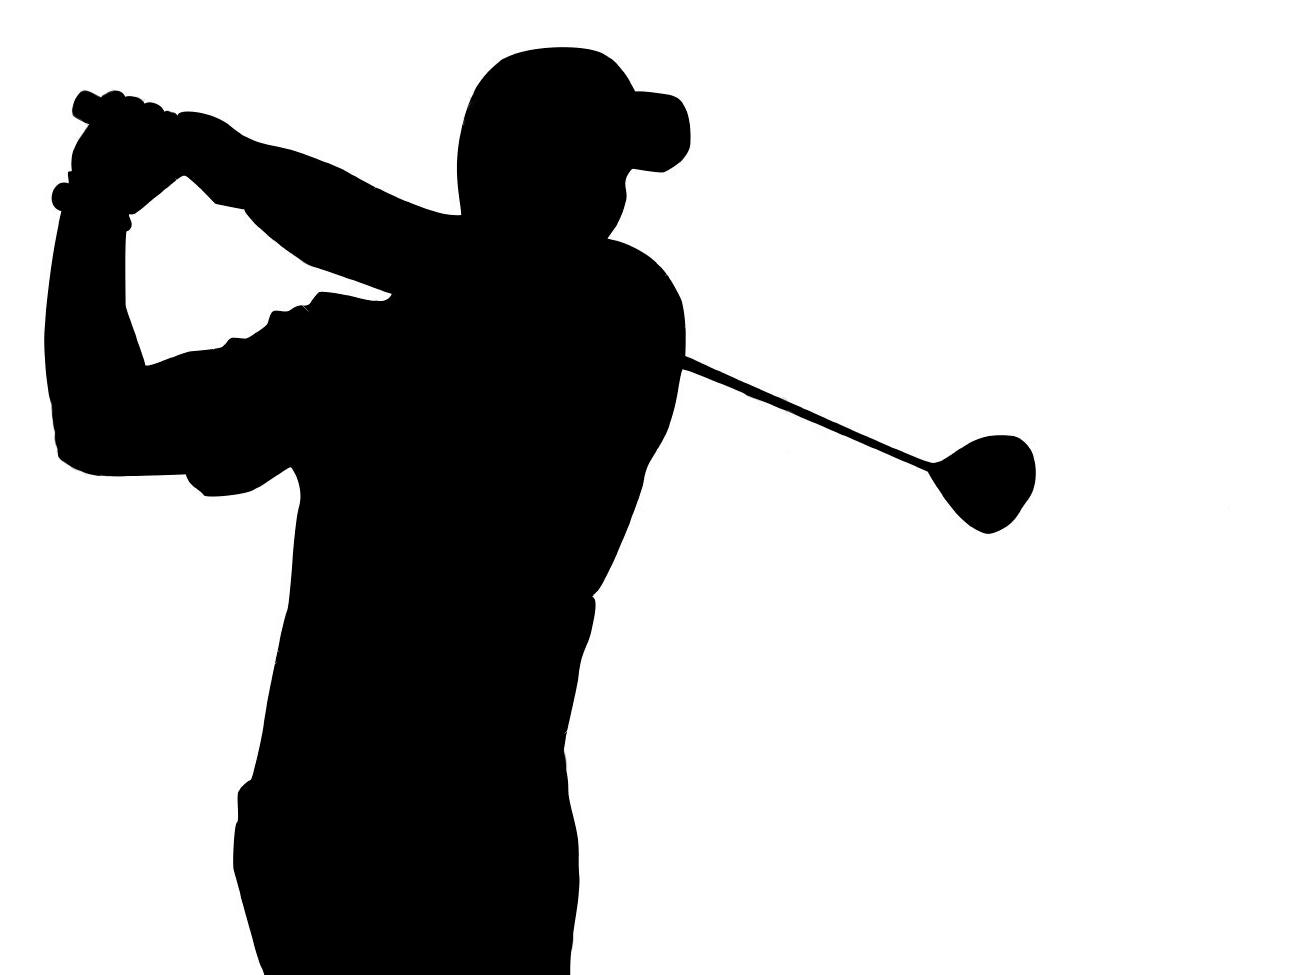 golf-silhouette-stock-vector-golf